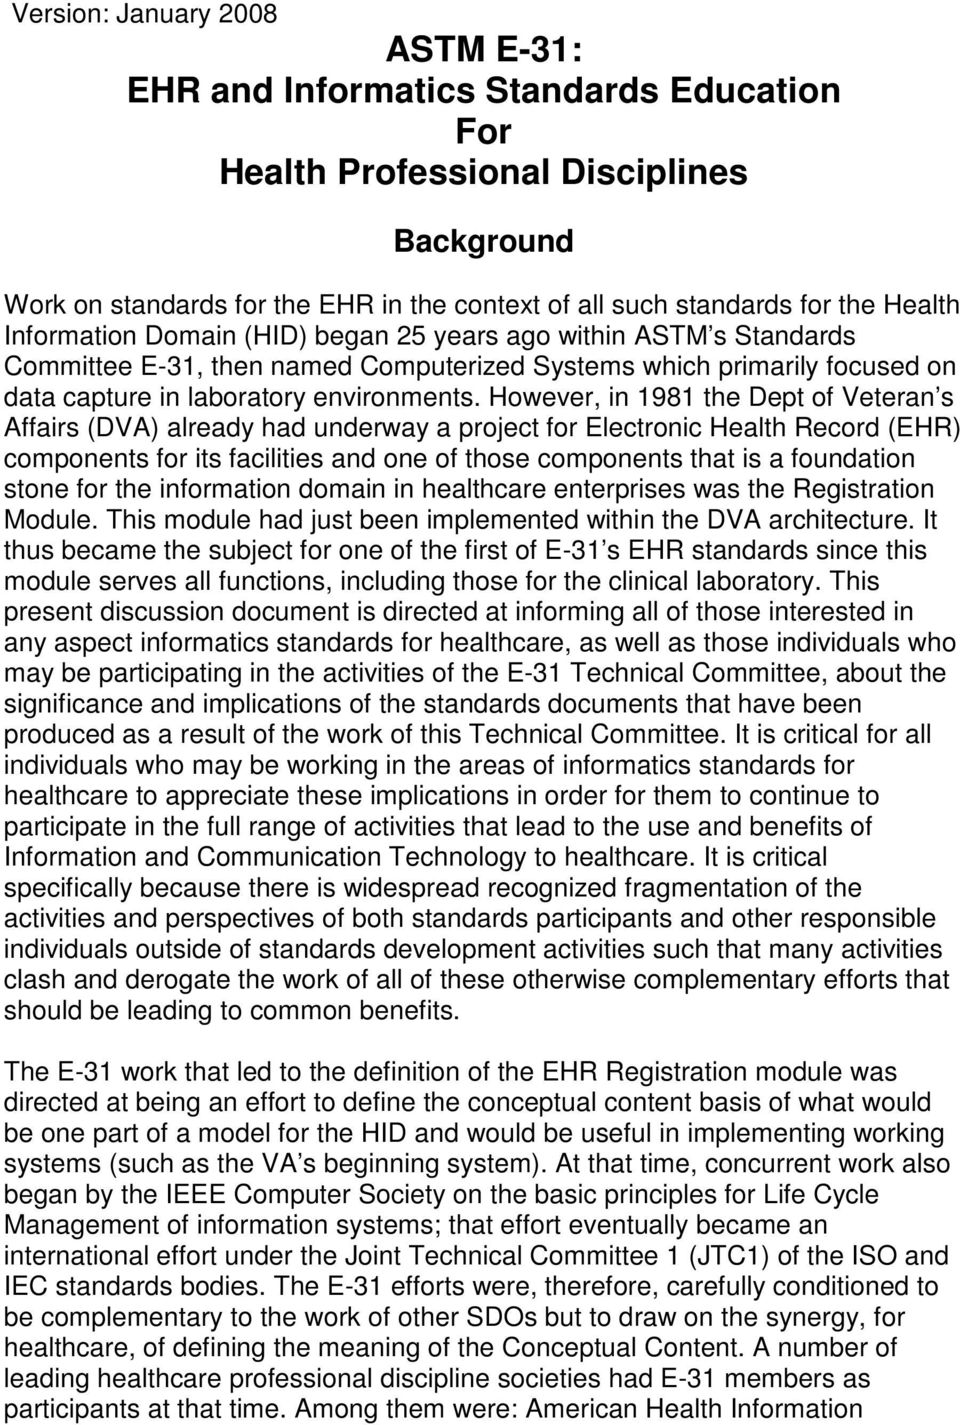 However, in 1981 the Dept of Veteran s Affairs (DVA) already had underway a project for Electronic Health Record (EHR) components for its facilities and one of those components that is a foundation